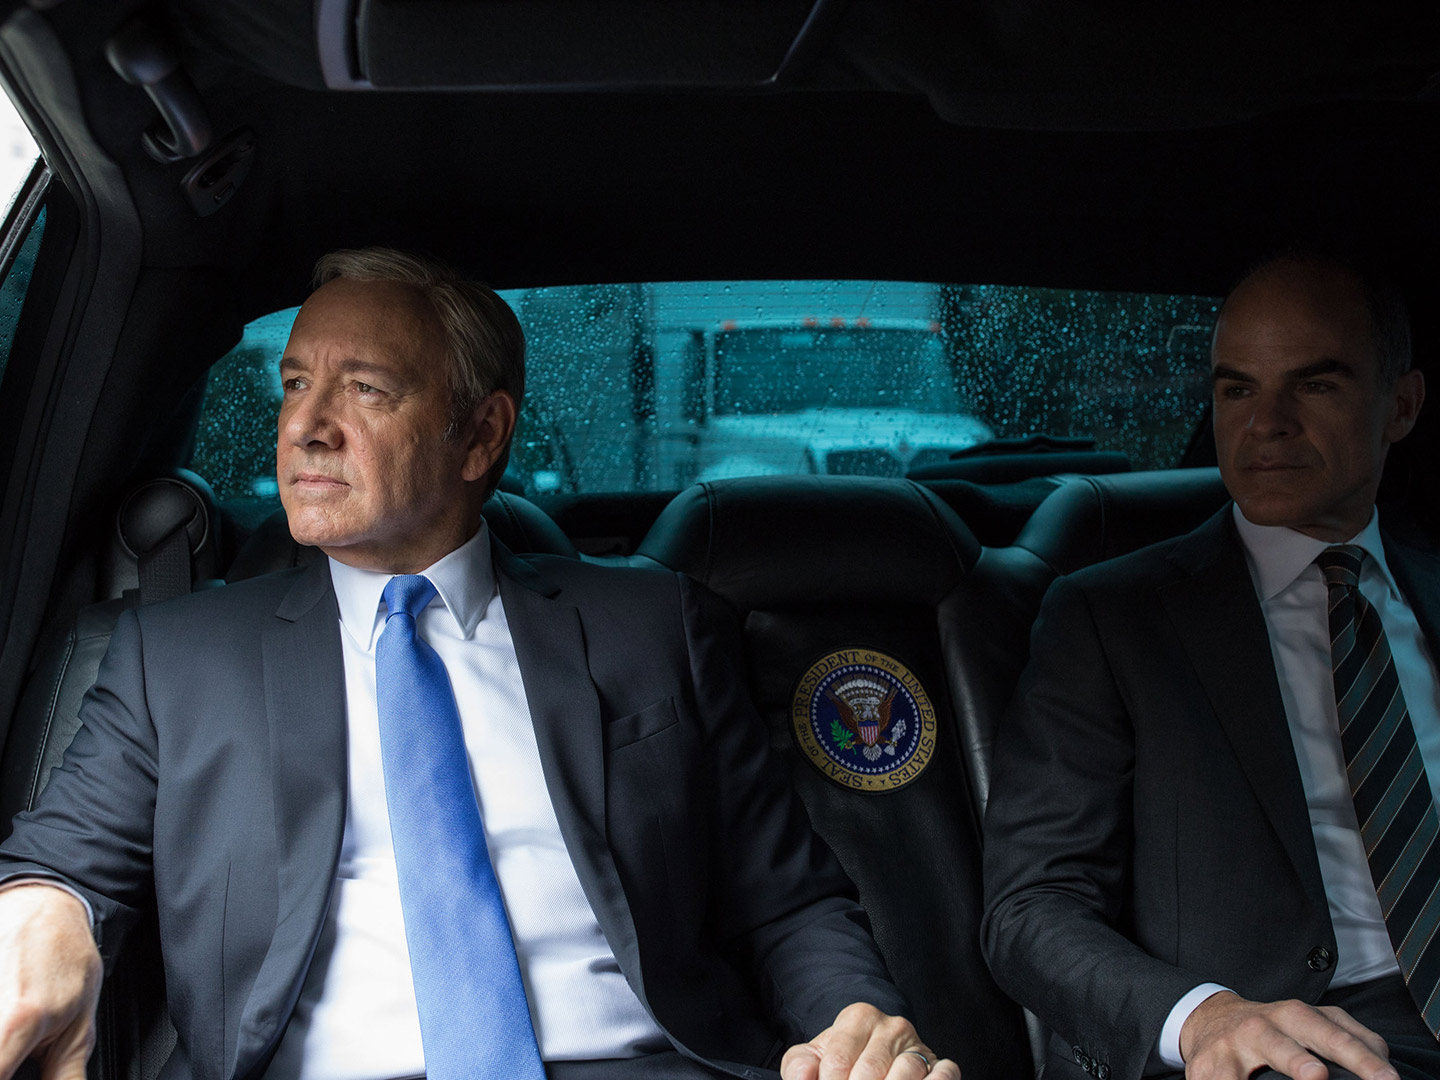 A day in the life of President Underwood